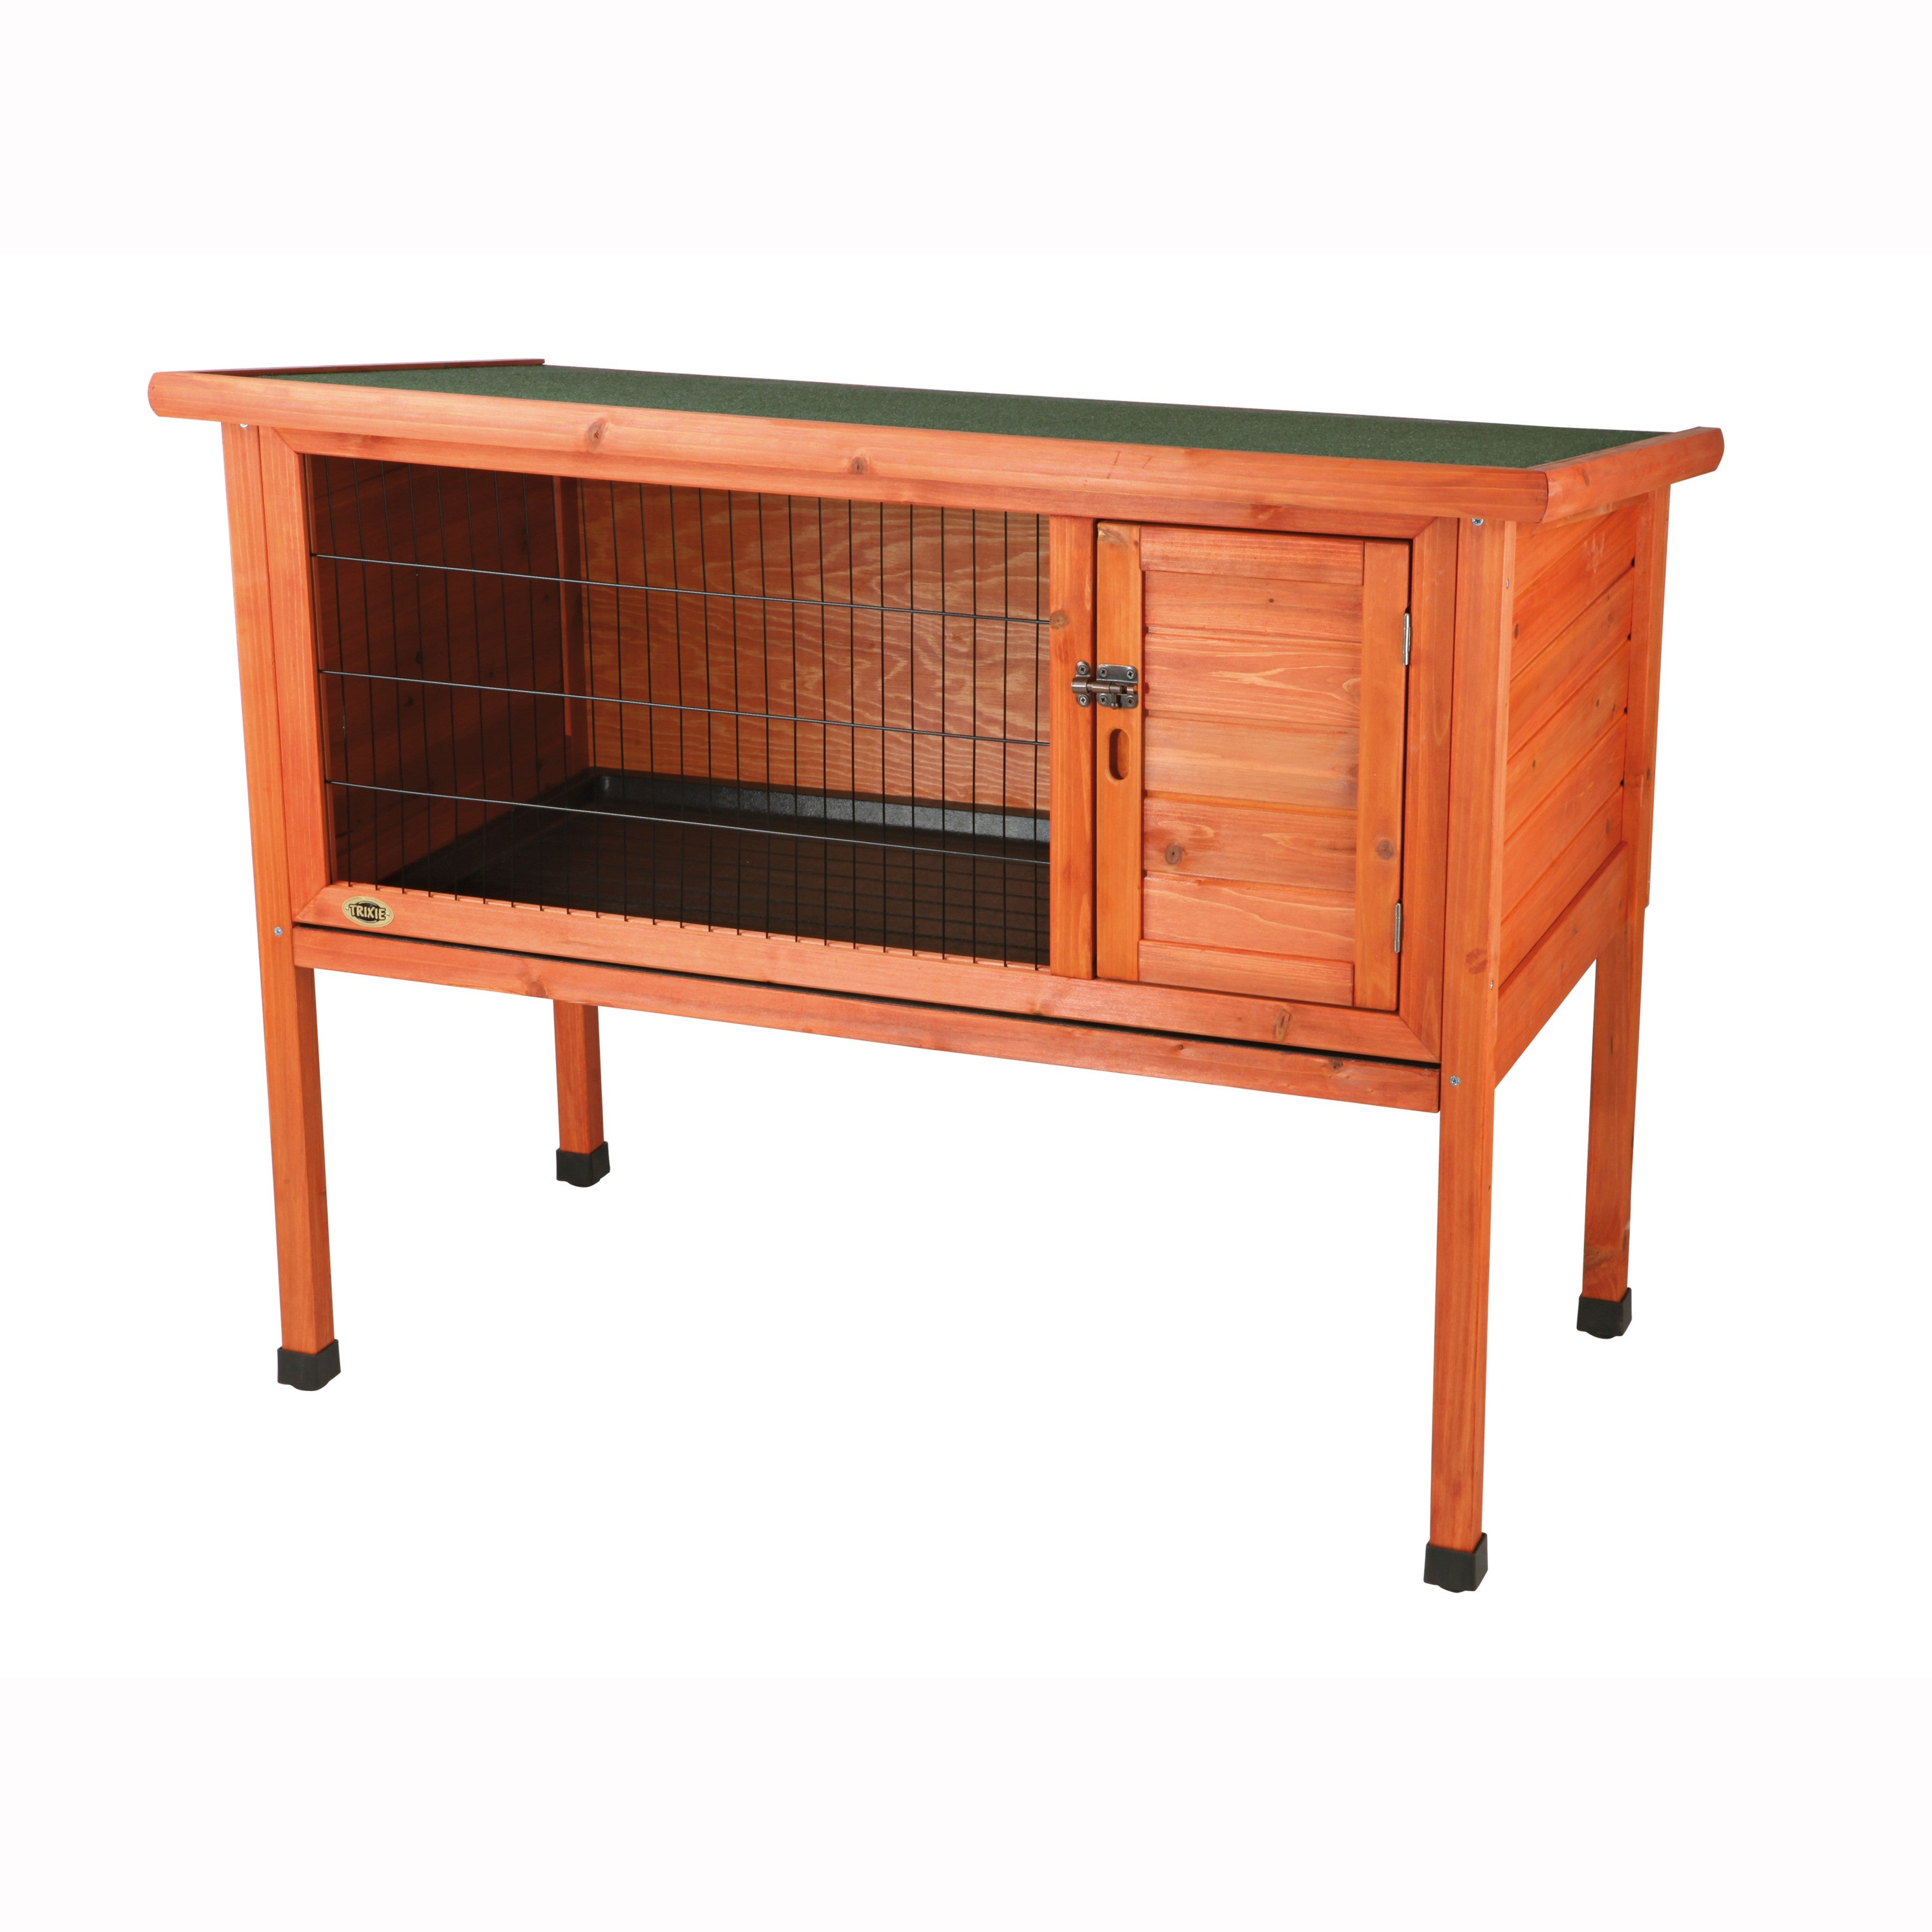 wood outdoor supplies wooden solid cage rabbit backyard hutch with run pet pawhut bunny